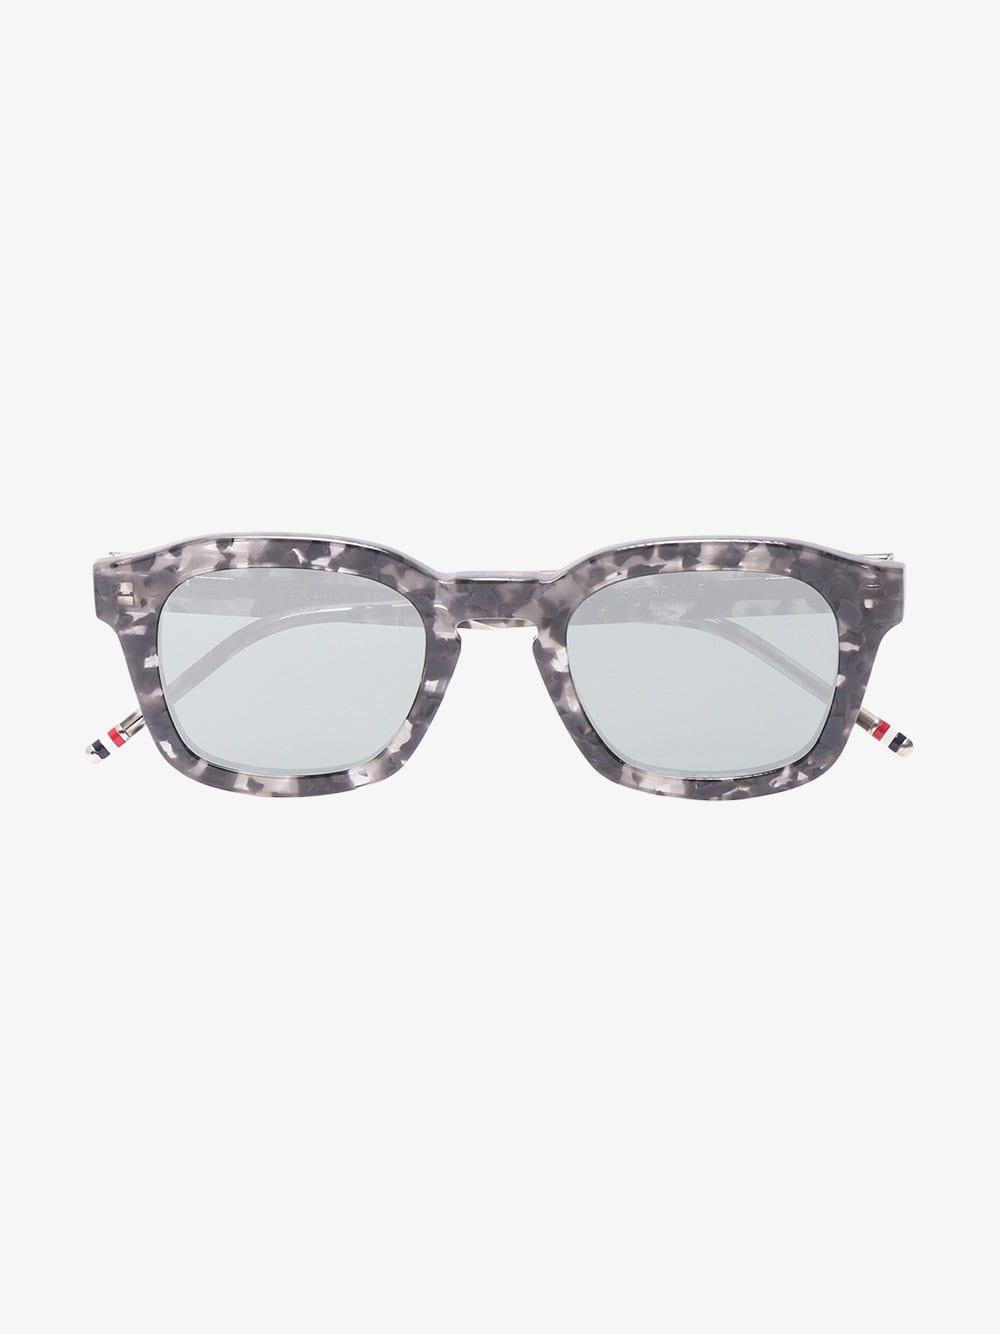 49d4f364040 Thom Browne - Gray Grey And Black Square Frame Sunglasses for Men - Lyst.  View fullscreen